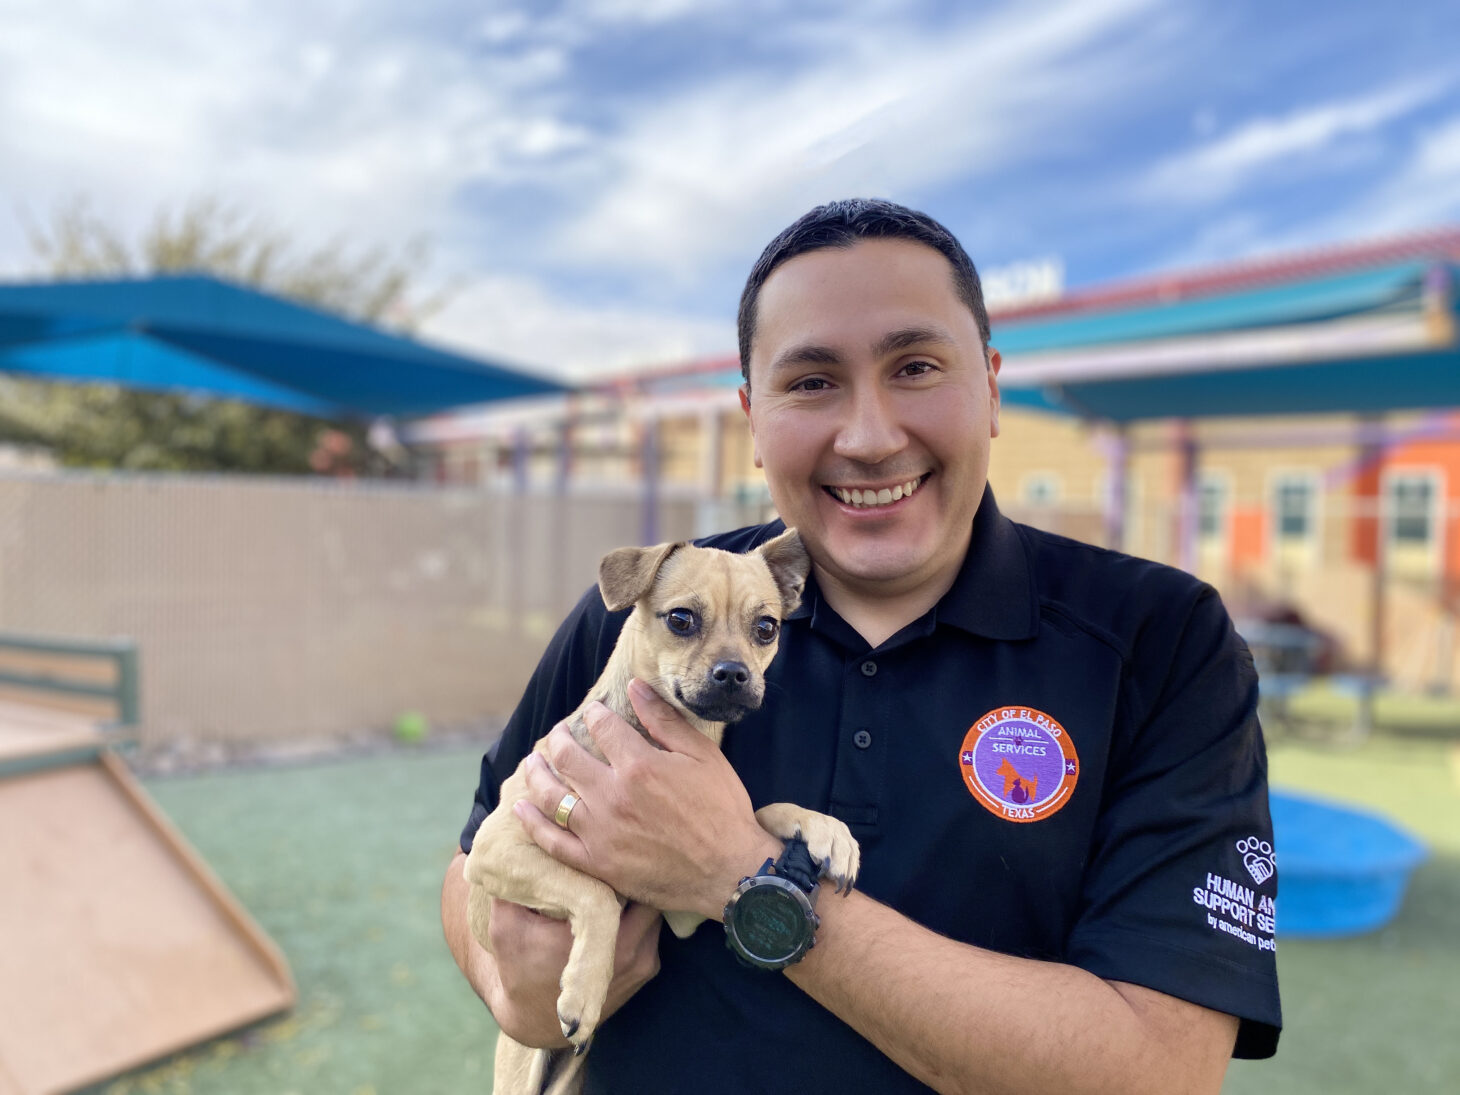 Herrera has served the City for nearly a decade in various key roles, most notably as a member of the Shelter Reform Taskforce that implemented departmental changes leading to Animal Services' success since 2017.